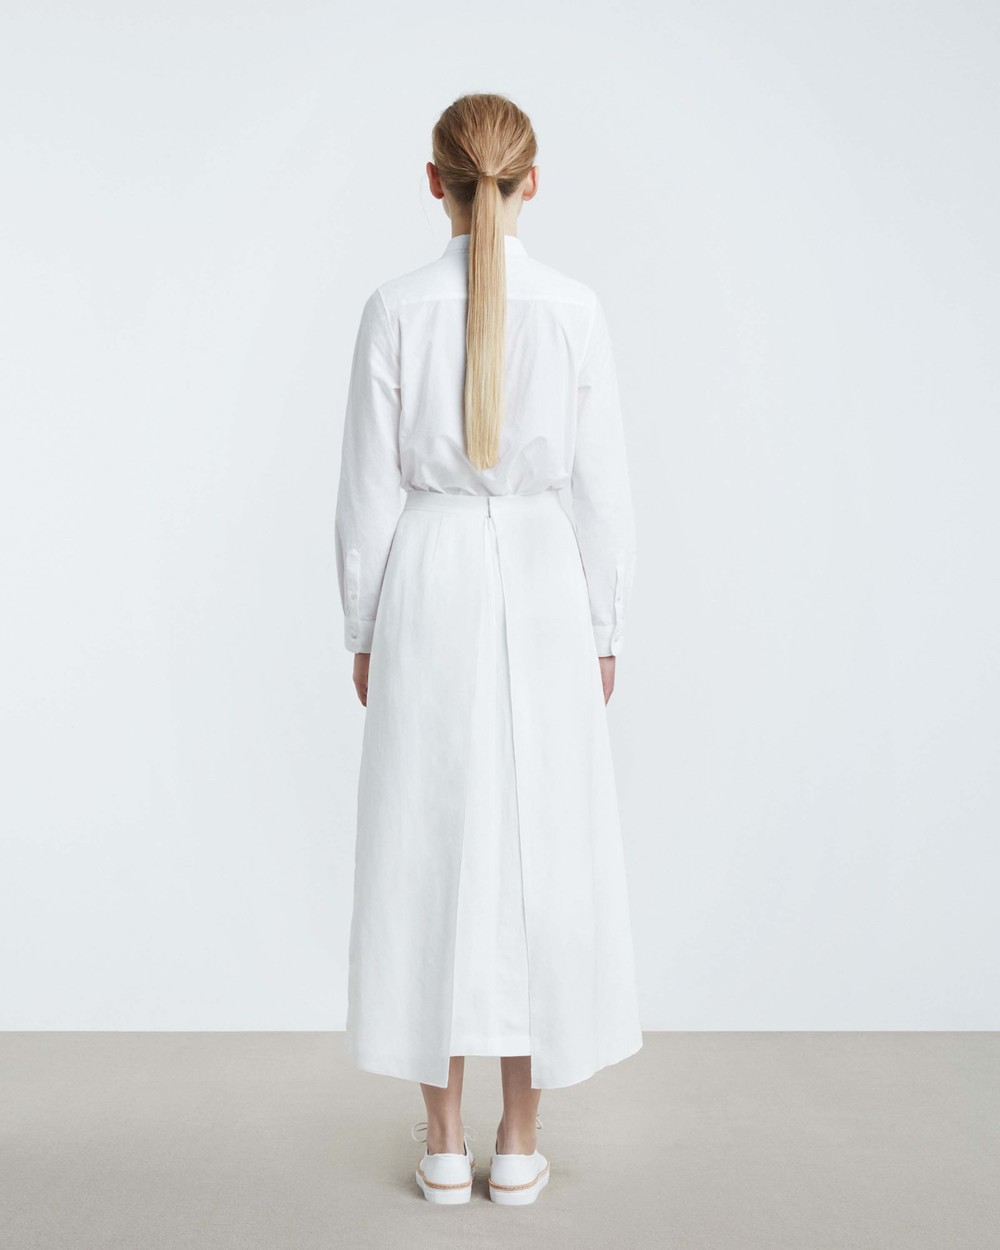 OuurMedia_OuurCollectionSS16_06.jpg